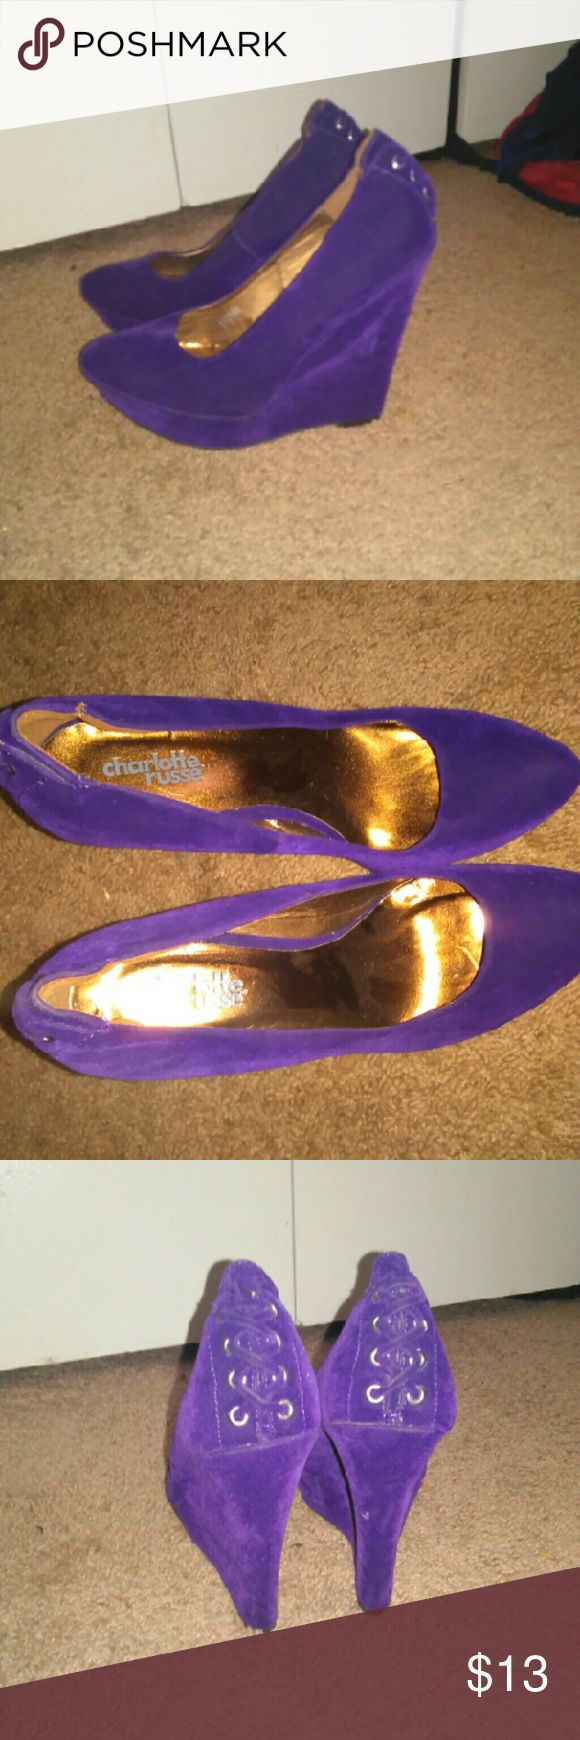 Charlotte russe womens wedges size 6 Suede . nwt. Purple Charlotte Russe Shoes Wedges